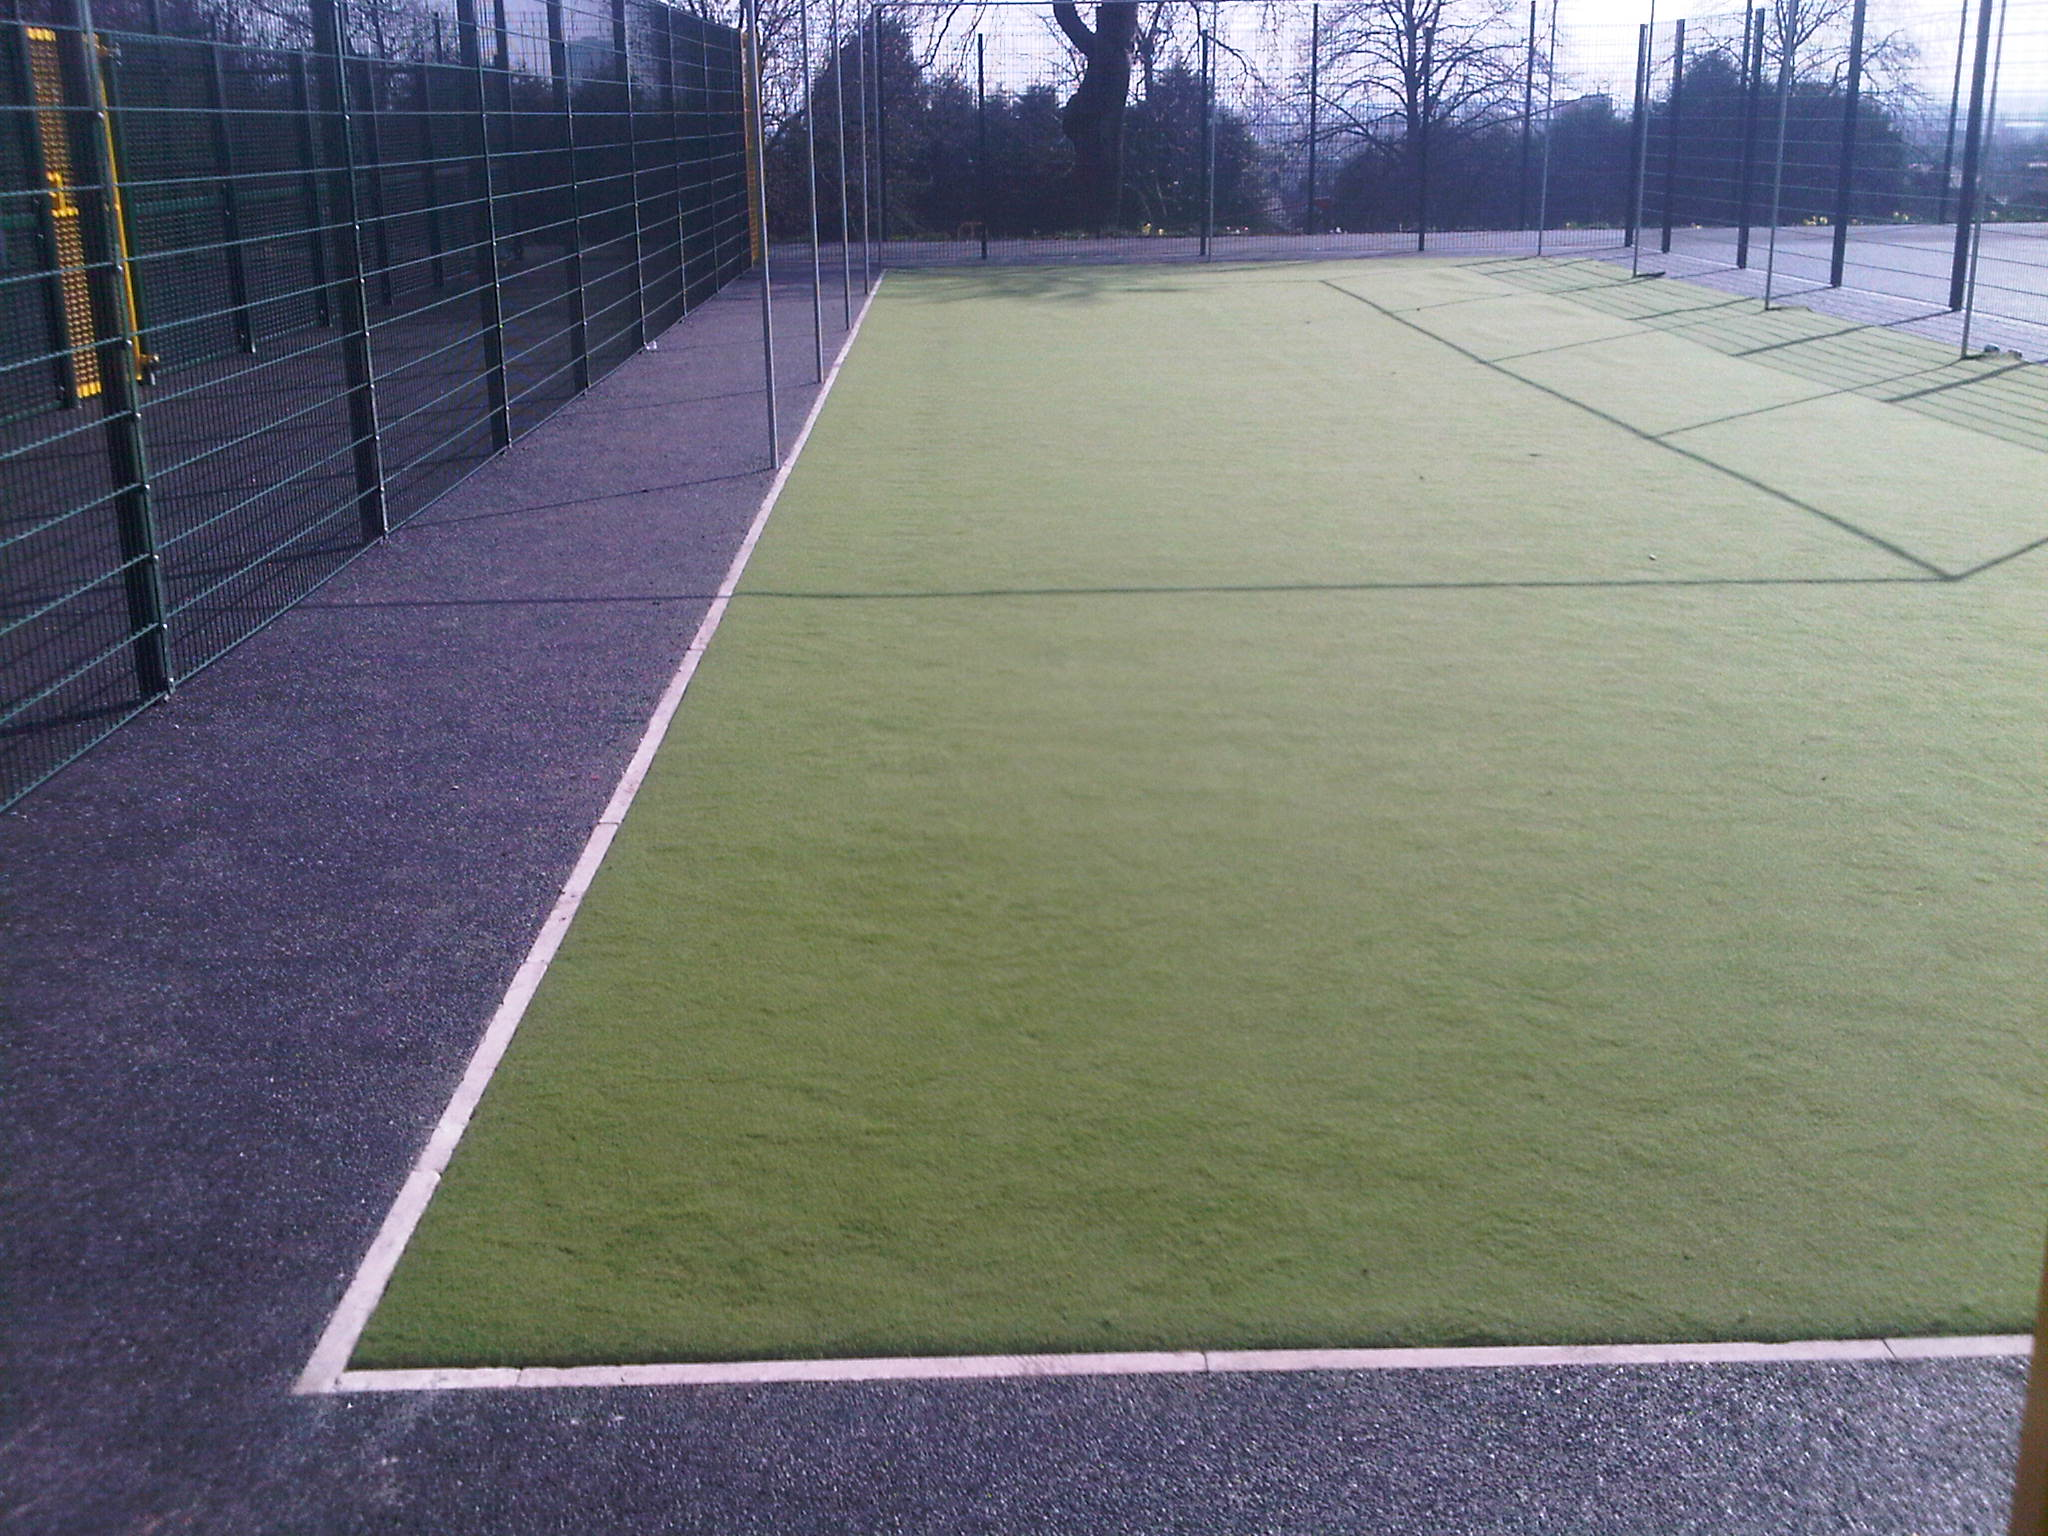 246m² sand filled carpet for cricket net in Seedley, Salford, Greater Manchester